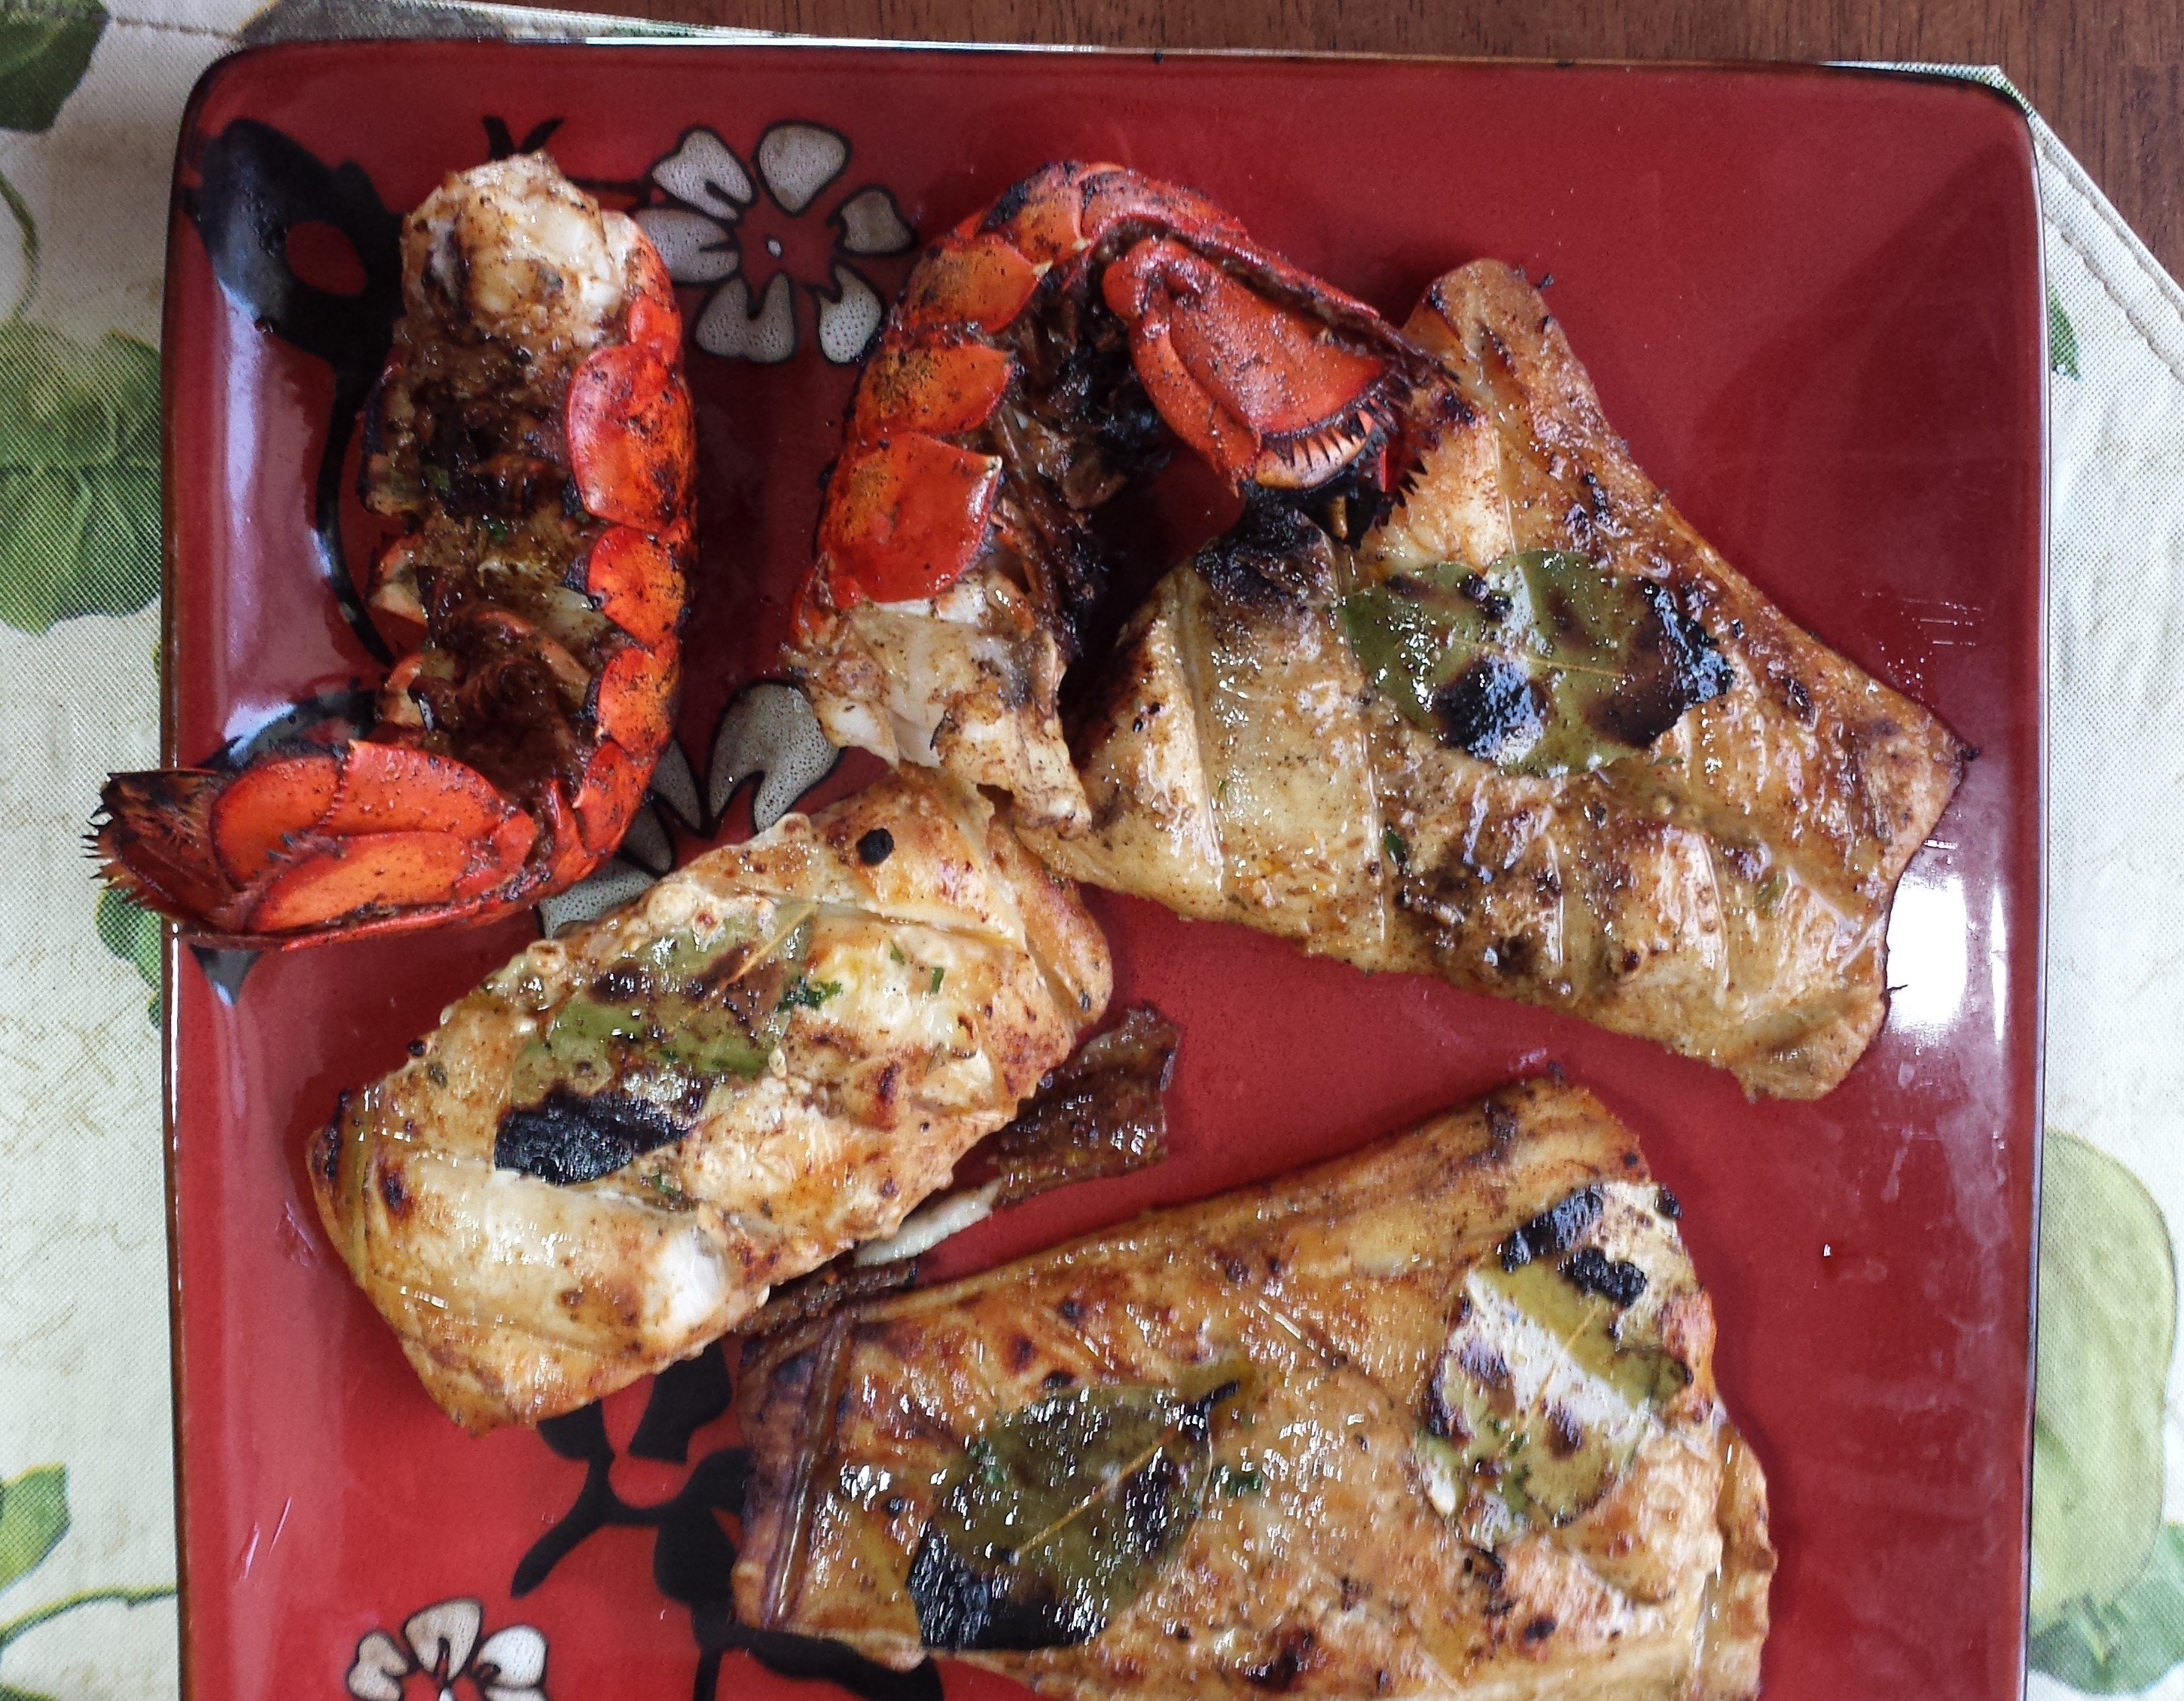 Red Wine With Lobster Tail - Best Lobster 2017